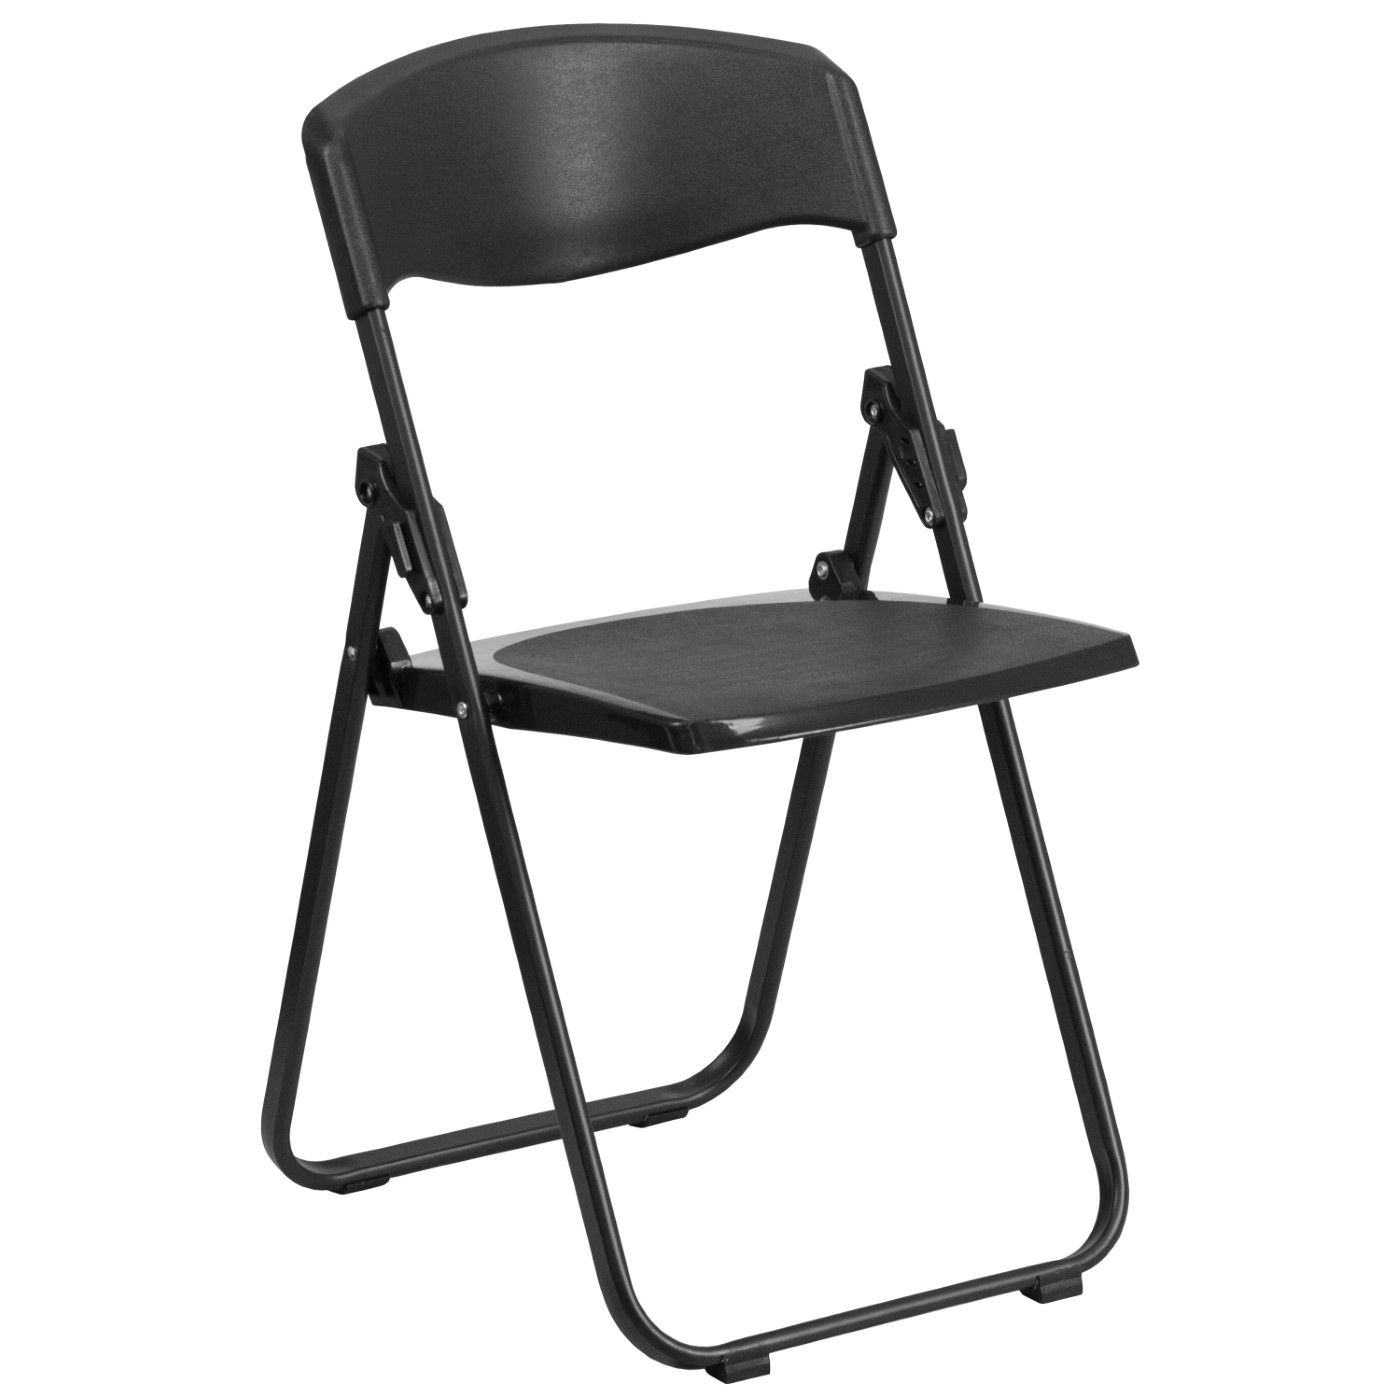 TOUGH ENOUGH Series 500 lb. Capacity Heavy Duty Black Plastic Folding Chair with Built-in Ganging Brackets. Note: Price Is For Two Chairs